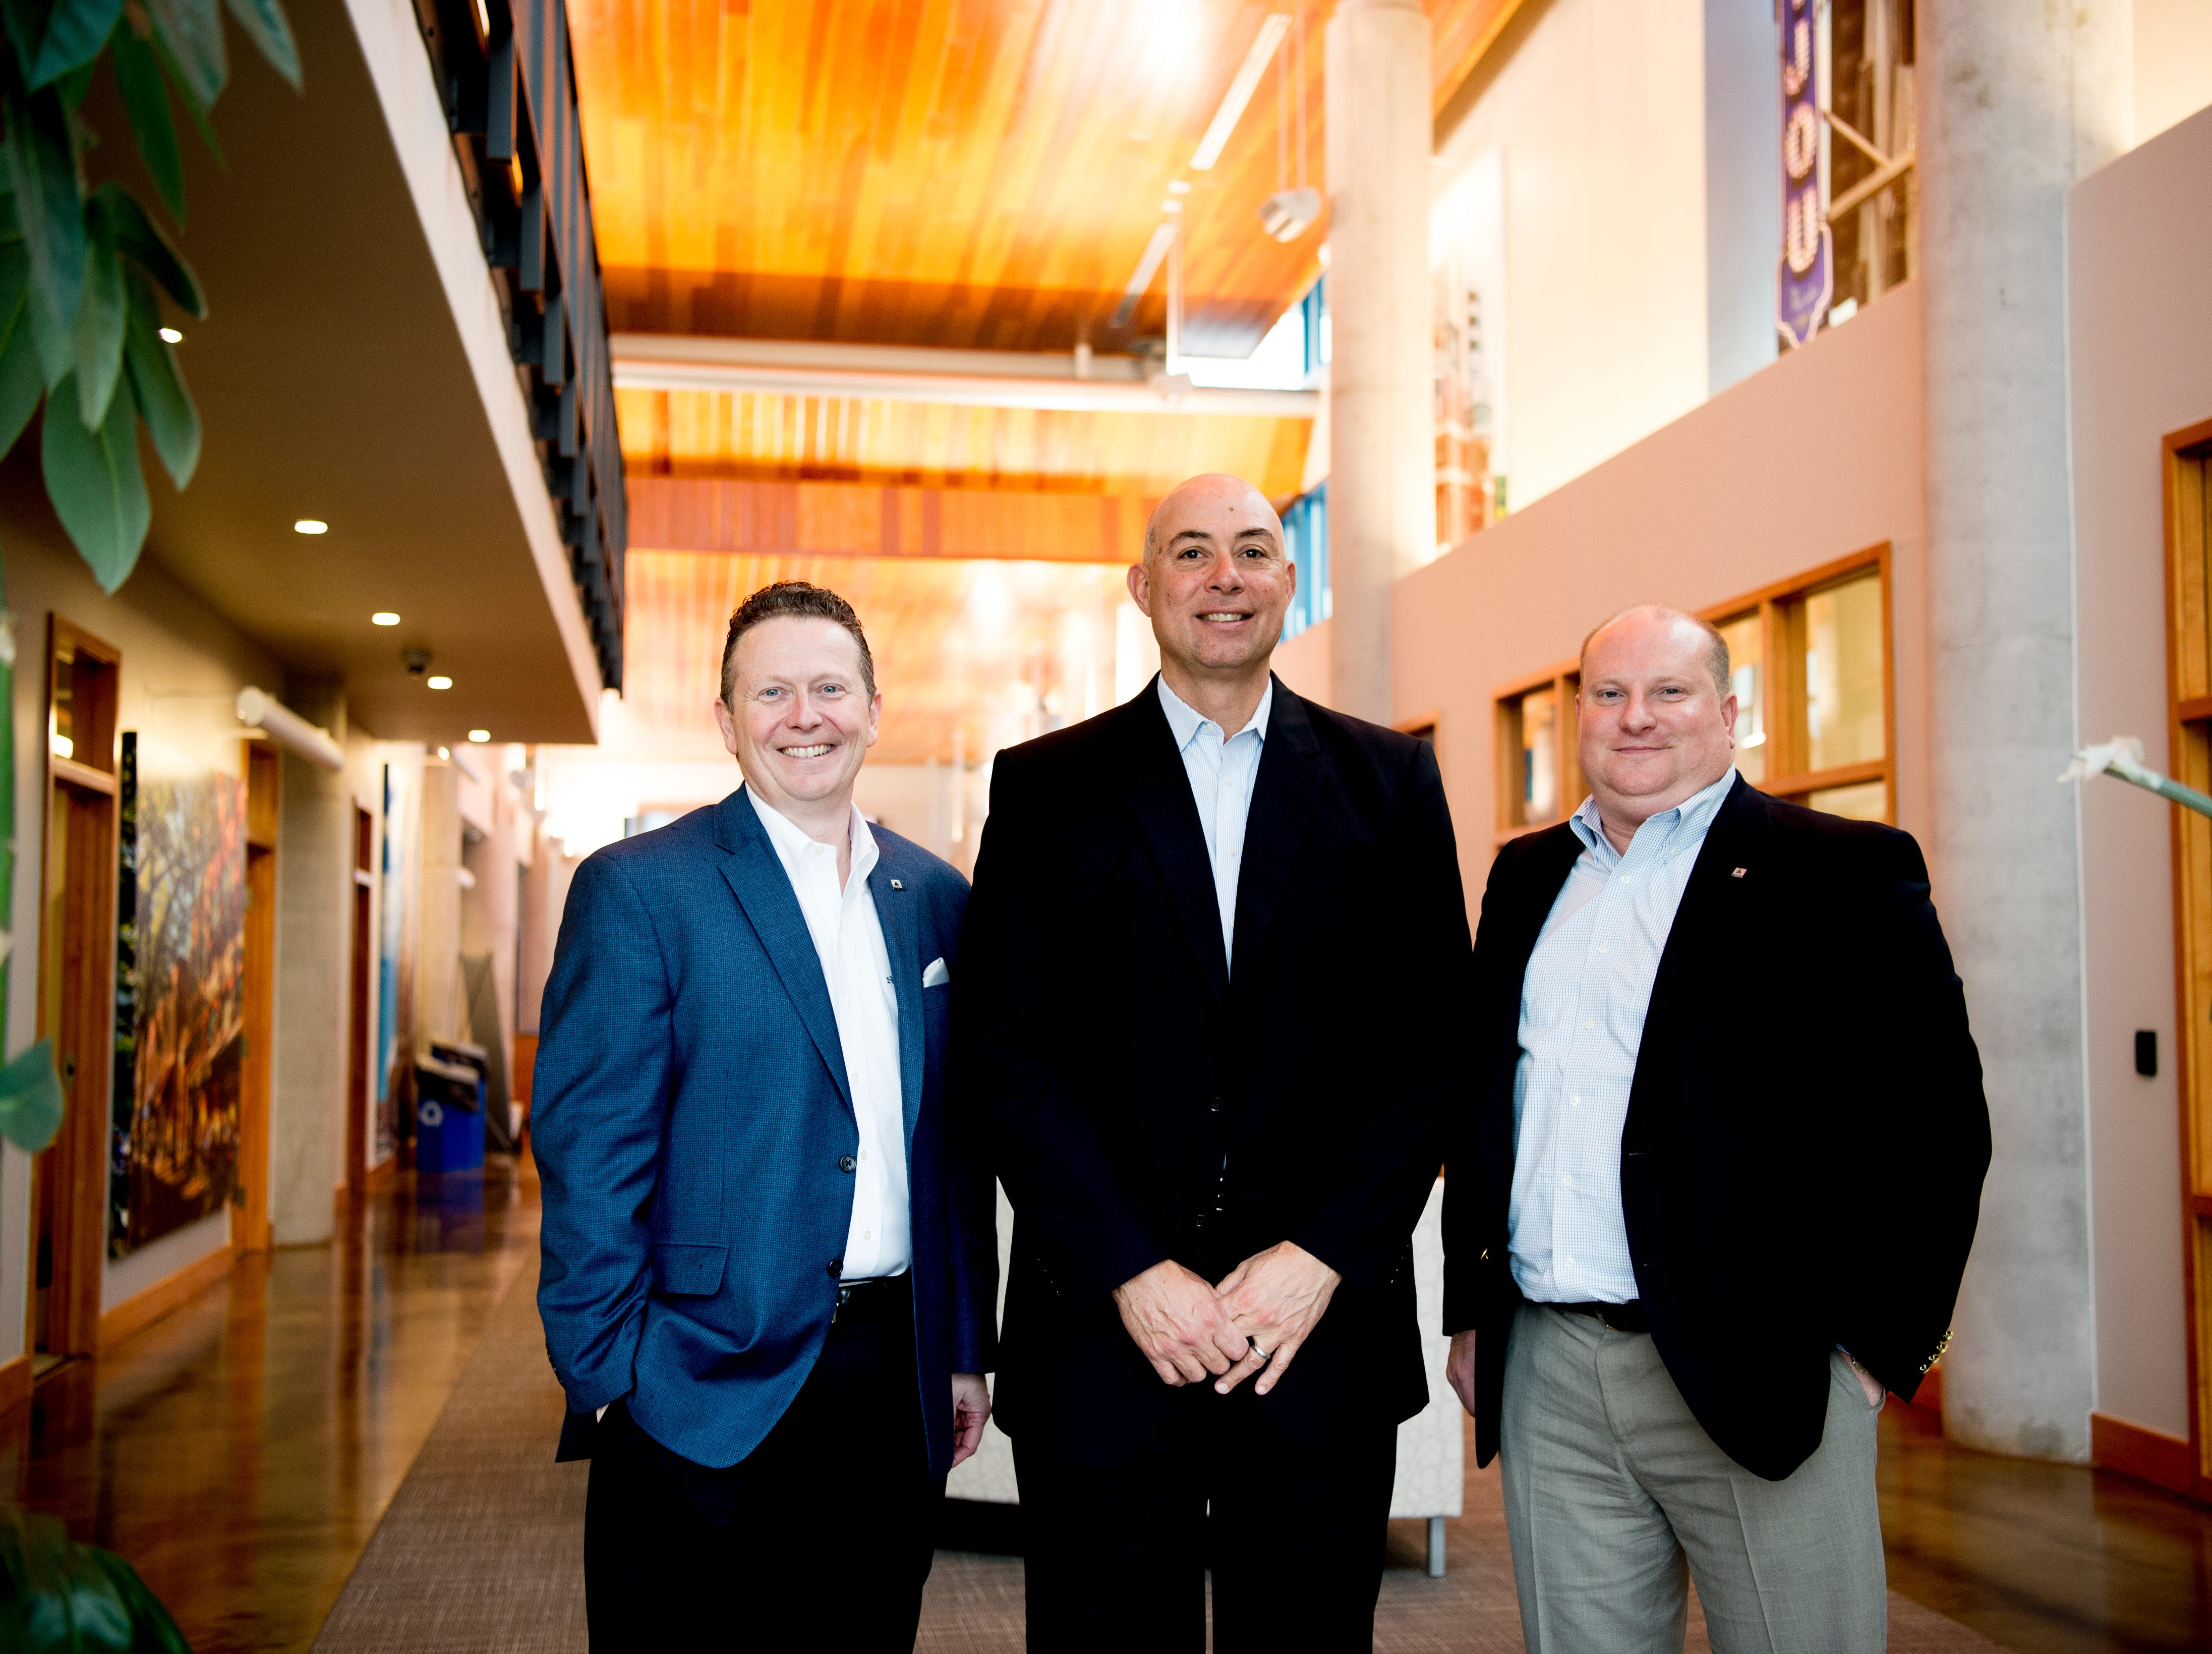 From left, Billy Carroll, President & Chief Executive Officer, Joe Hamdi, Market Executive, and Mike Honeycutt, Northeast Tennessee Regional President, pose for a photo at the Cedar Bluff SmartBank location in West Knoxville, Tennessee on Tuesday, February 12, 2019. Pigeon Forge-founded SmartBank has signed a definitive merger agreement with North Carolina-based Entegra Bank.